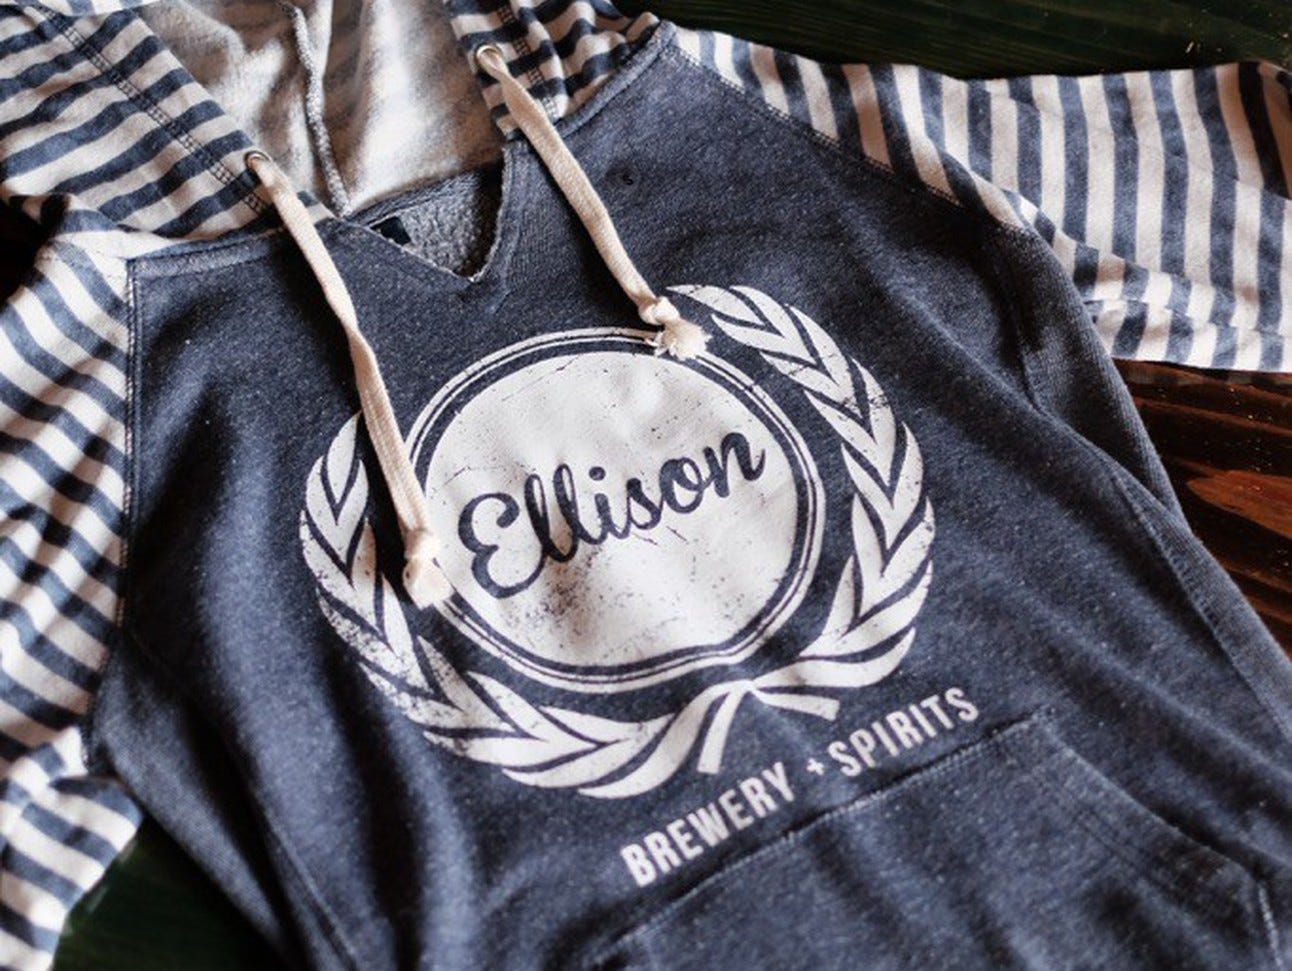 Do you like Ellison Brewery + Spirits? You can save on all their signature apparel this summer.